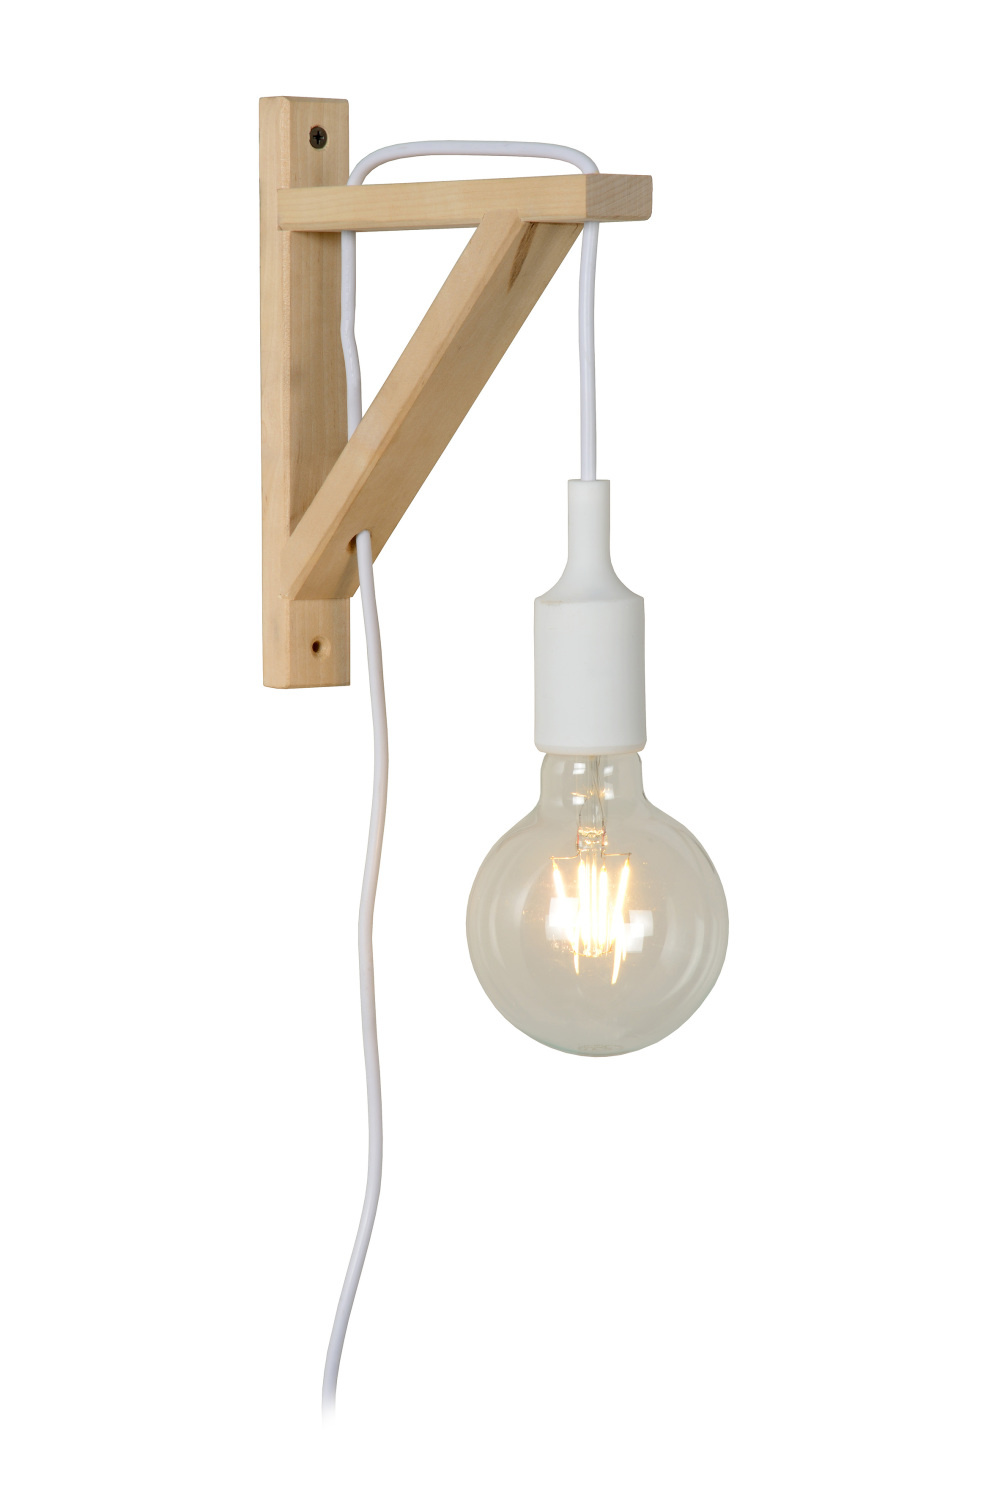 Lucide FIX Wandlicht E27excl H22cm Hout/Wit